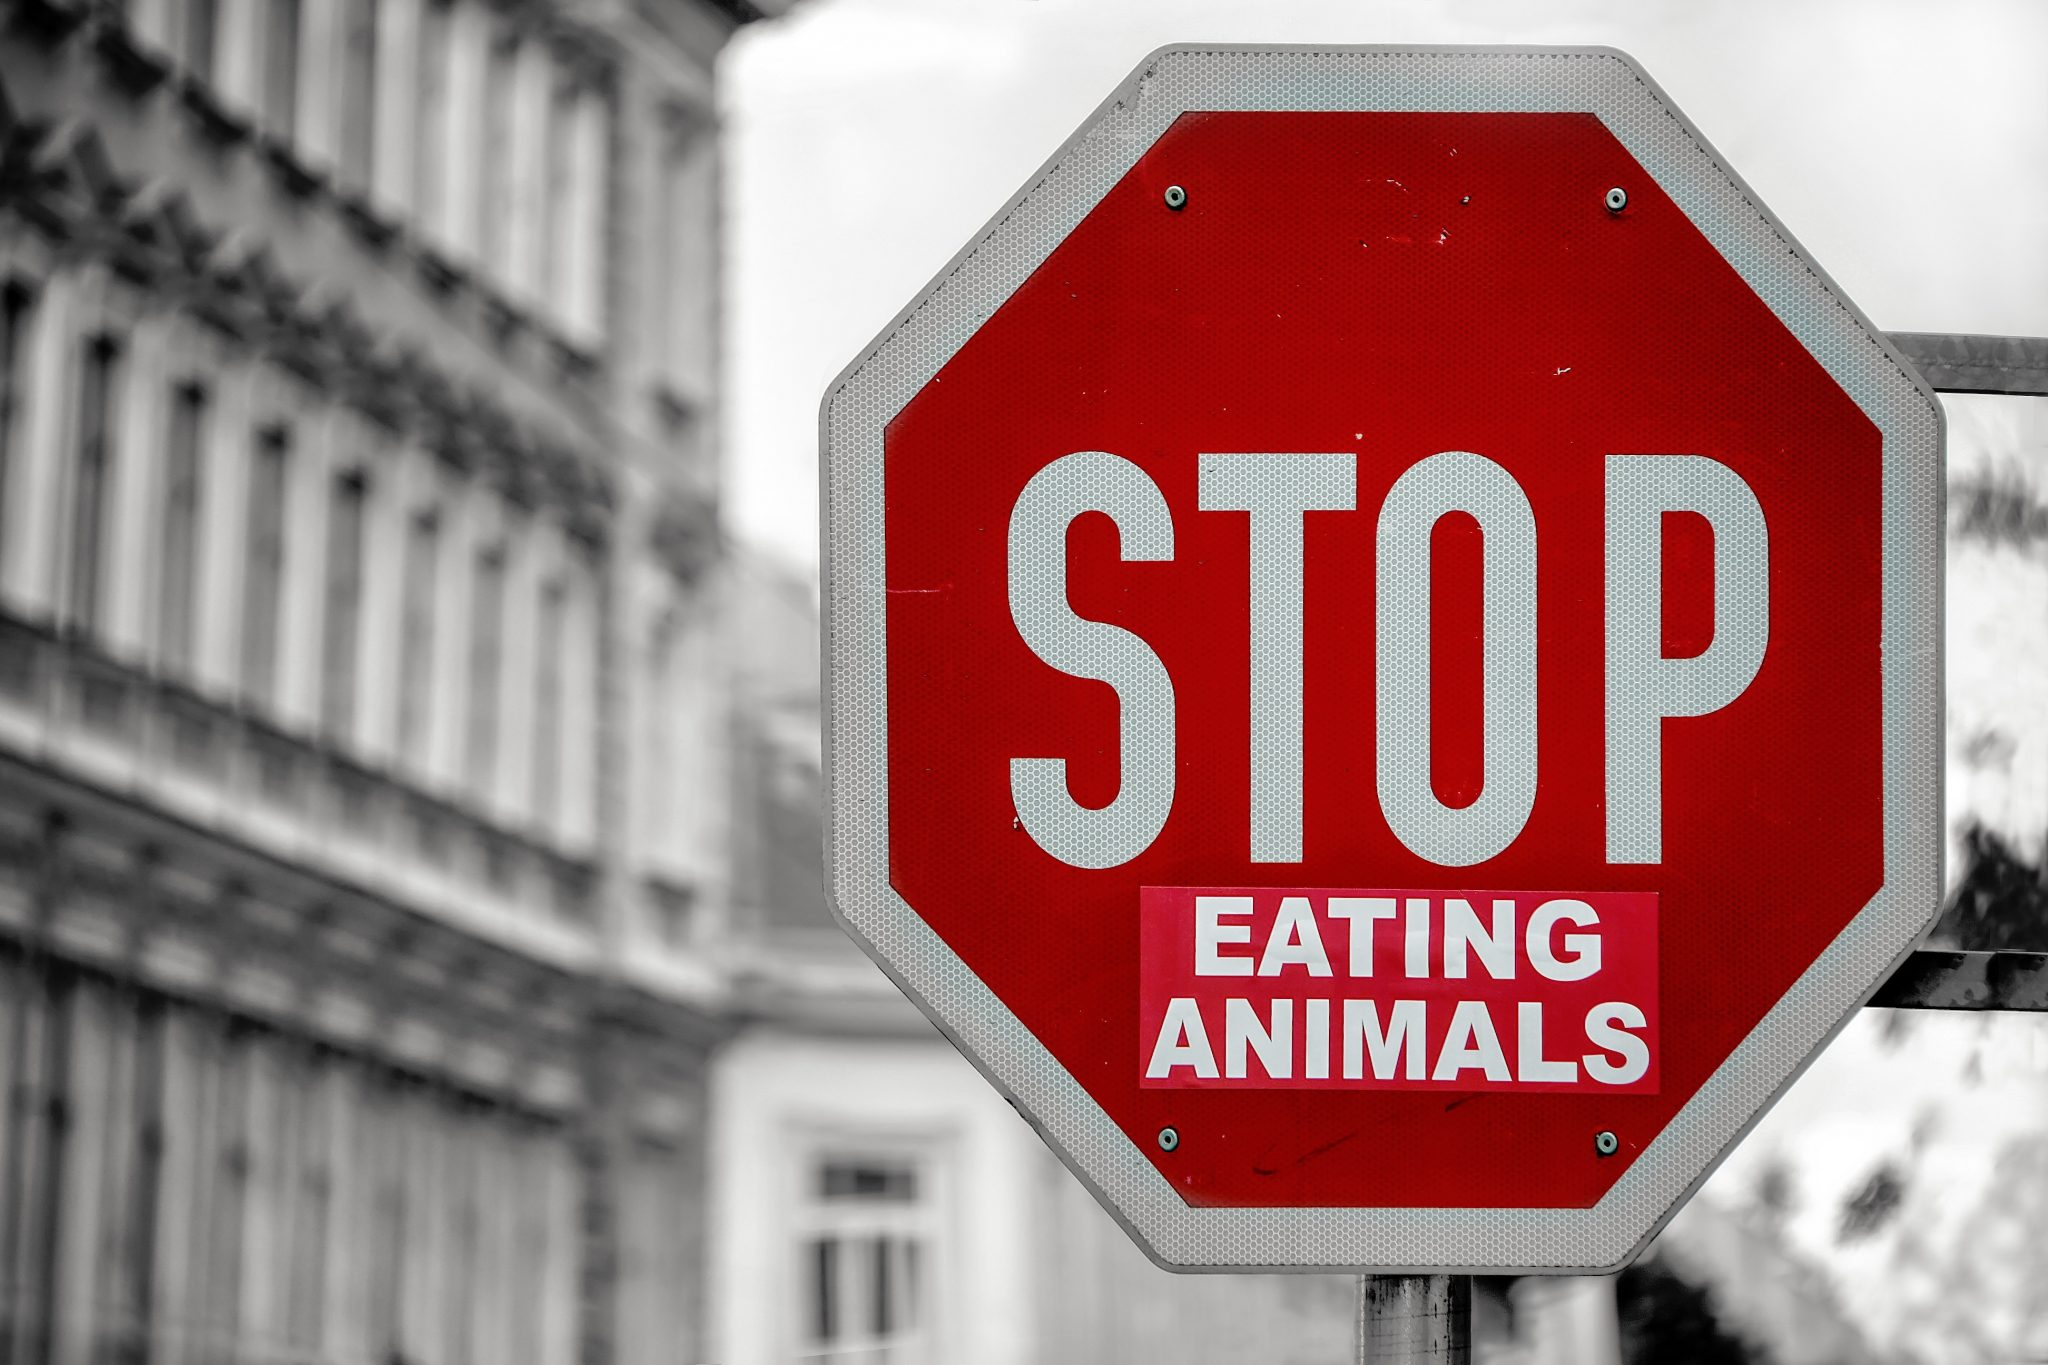 Stop eating animals stop sign